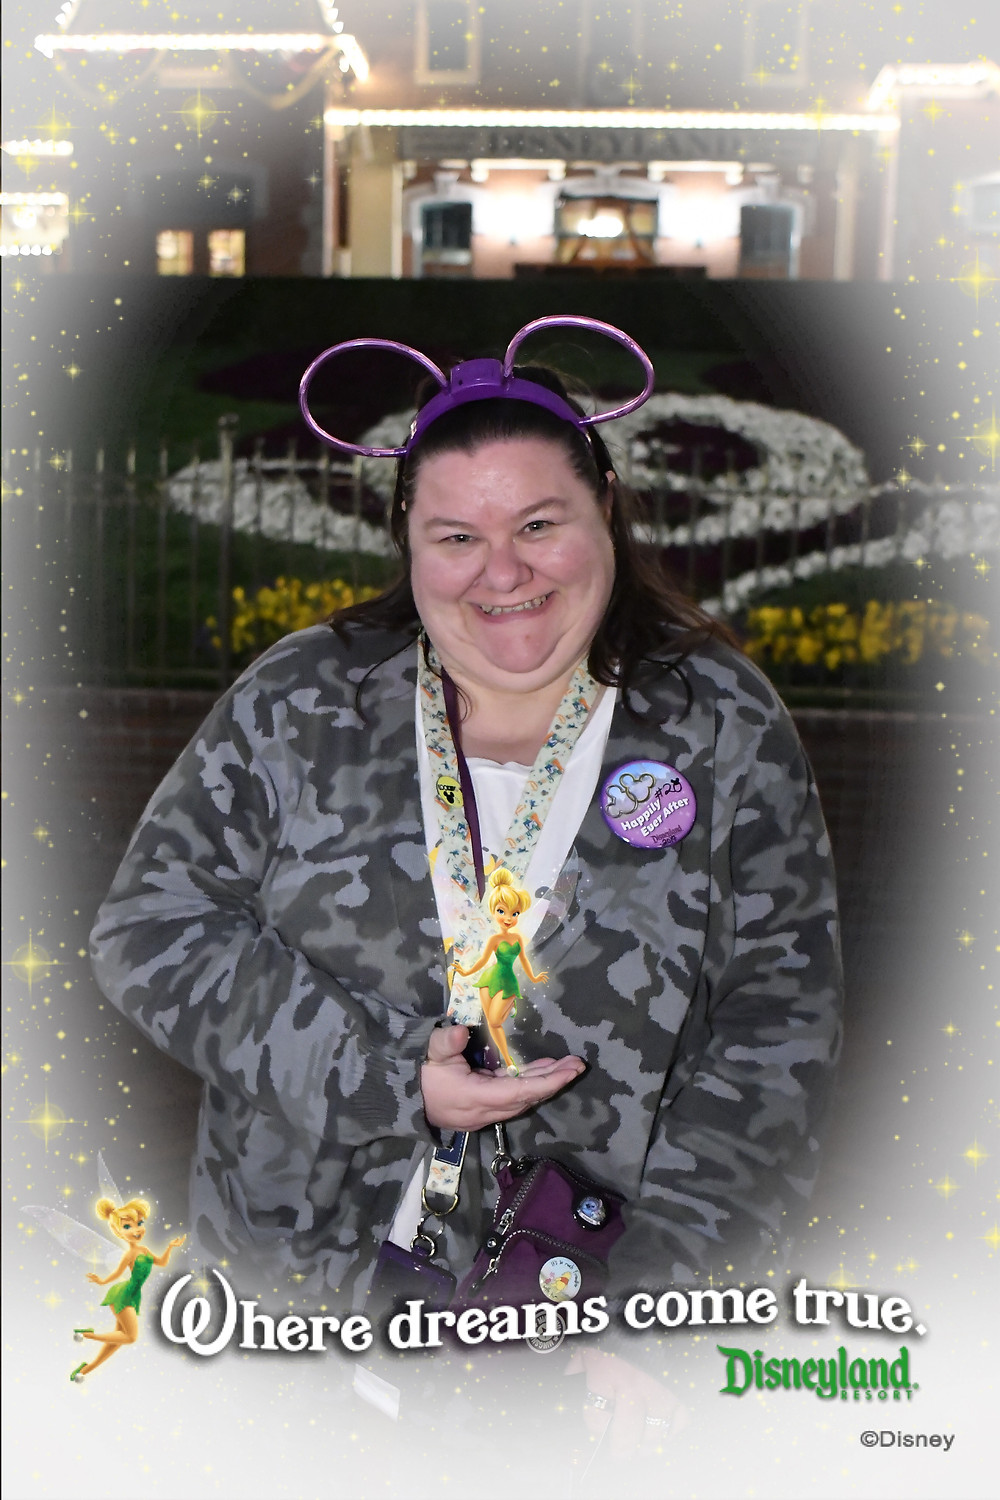 Melissa from Disabled Disney at Disneyland holding Tinkerbell